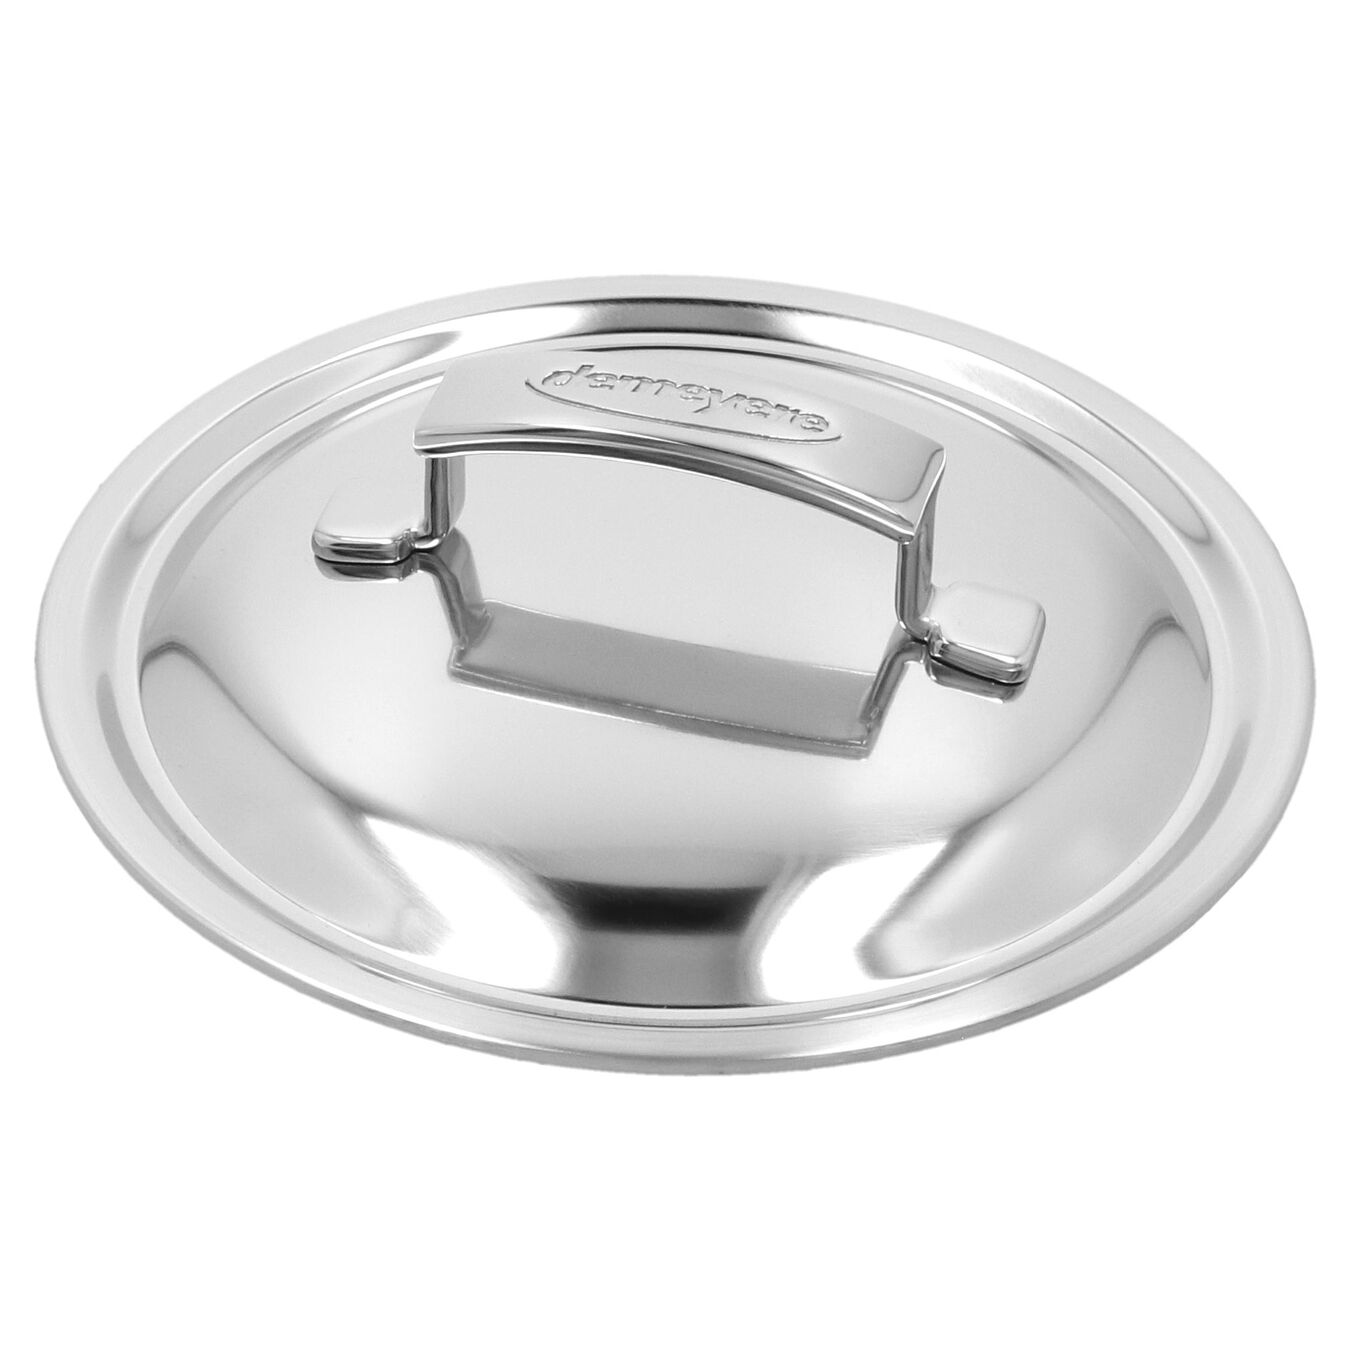 60-oz Sauce pan with double walled lid, 18/10 Stainless Steel ,,large 3